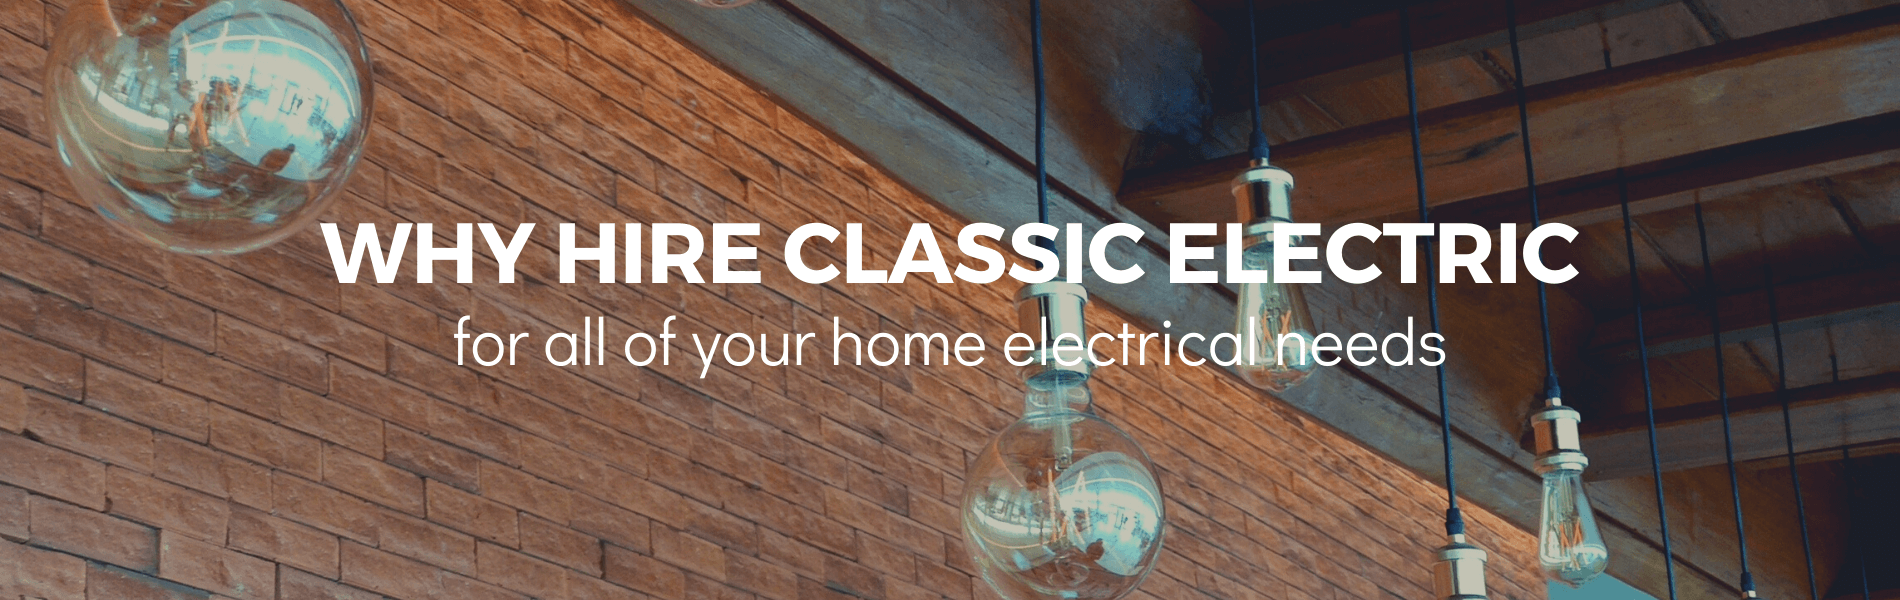 why hire classic electric for all of your oregon electrical needs